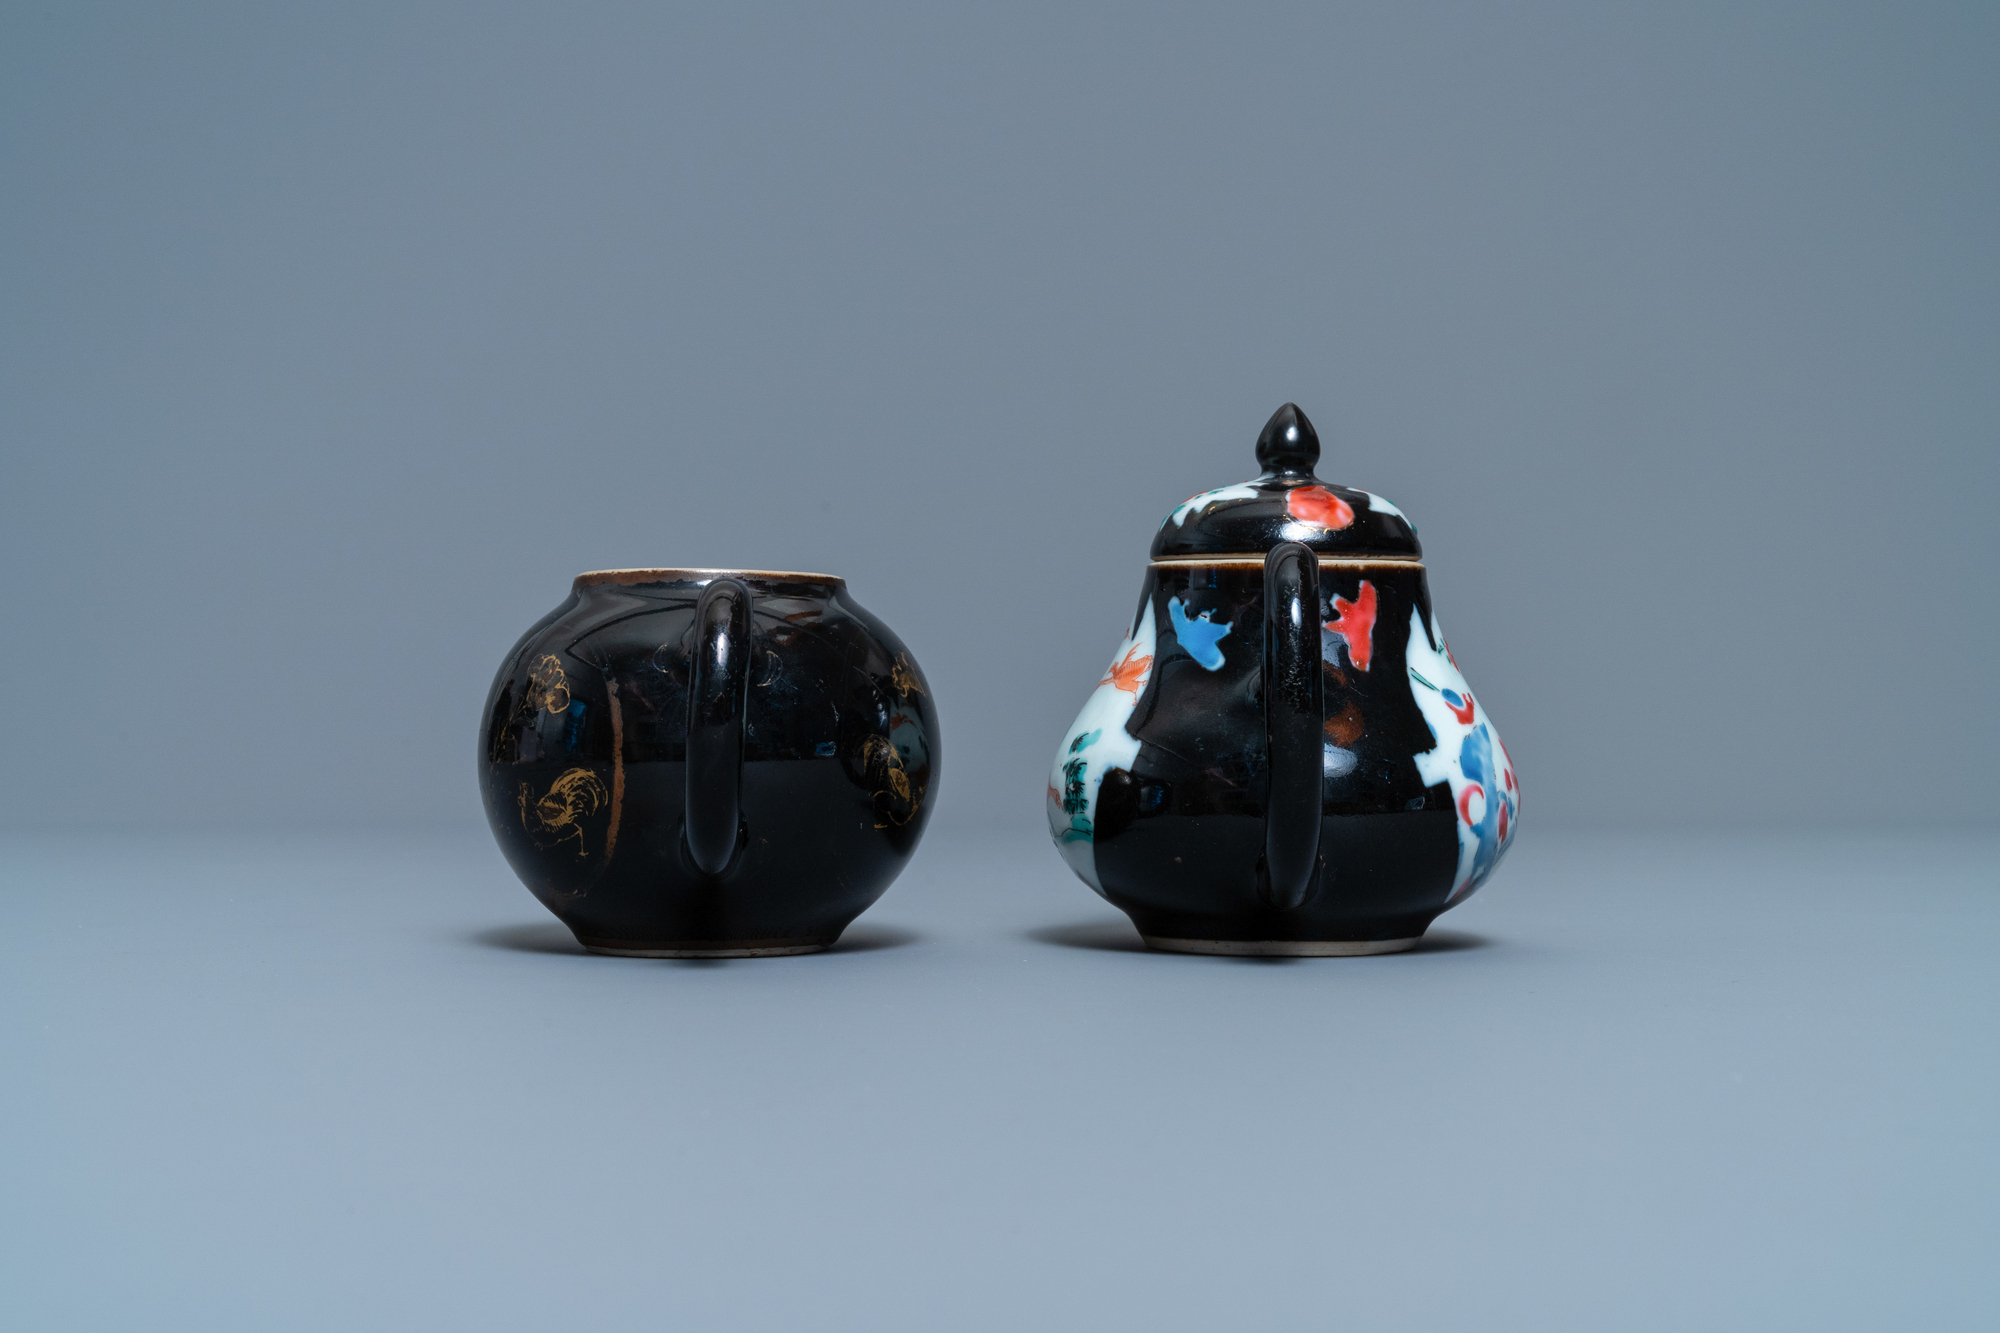 Two Chinese famille noire teapots, a pattipan and two spoon trays, Yongzheng/Qianlong - Image 7 of 9